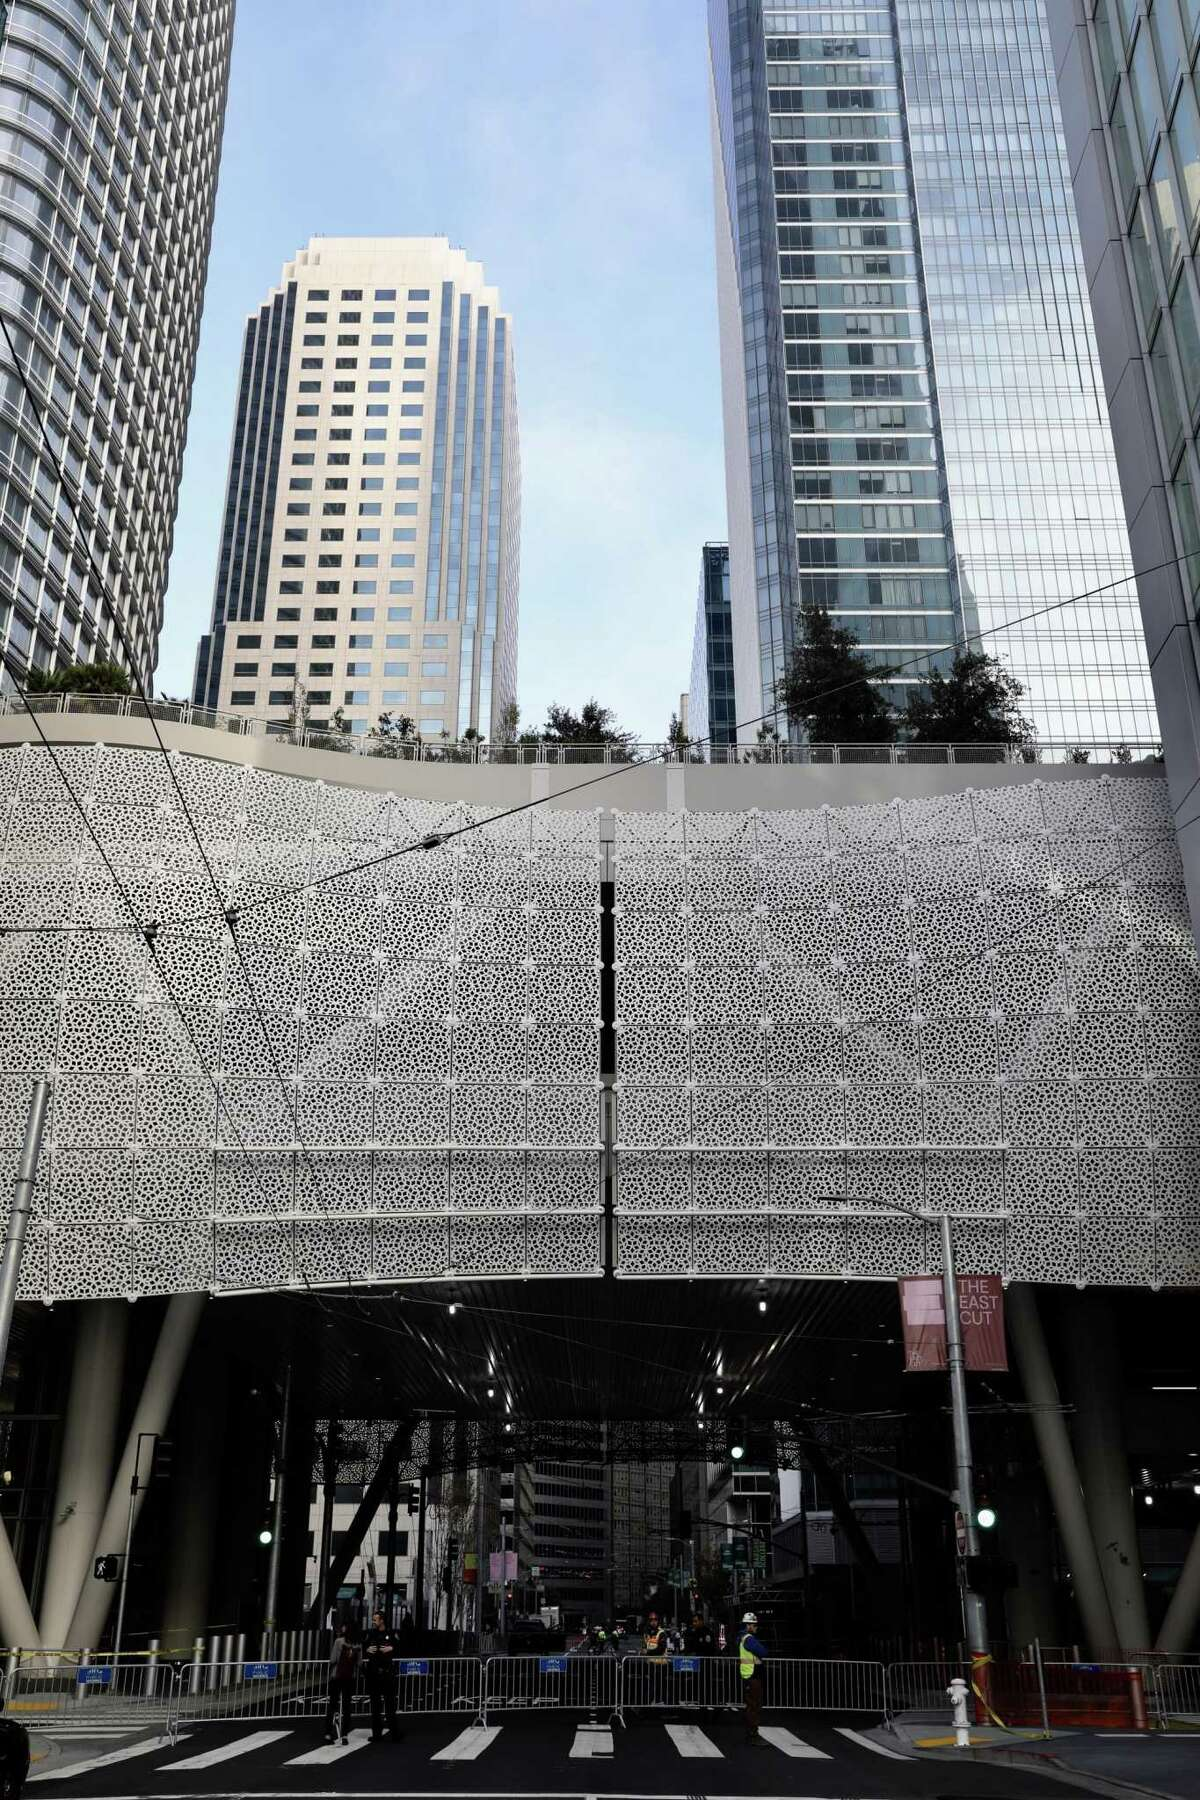 The Transbay Transit Center, seen at Howard and Fremont, is closed on Wednesday, September 26, 2018, in San Francisco, Calif. A crack was discovered yesterday in a steel beam that supports the roof garden of the new $2.2 billion Transbay Transit Center in downtown San Francisco.